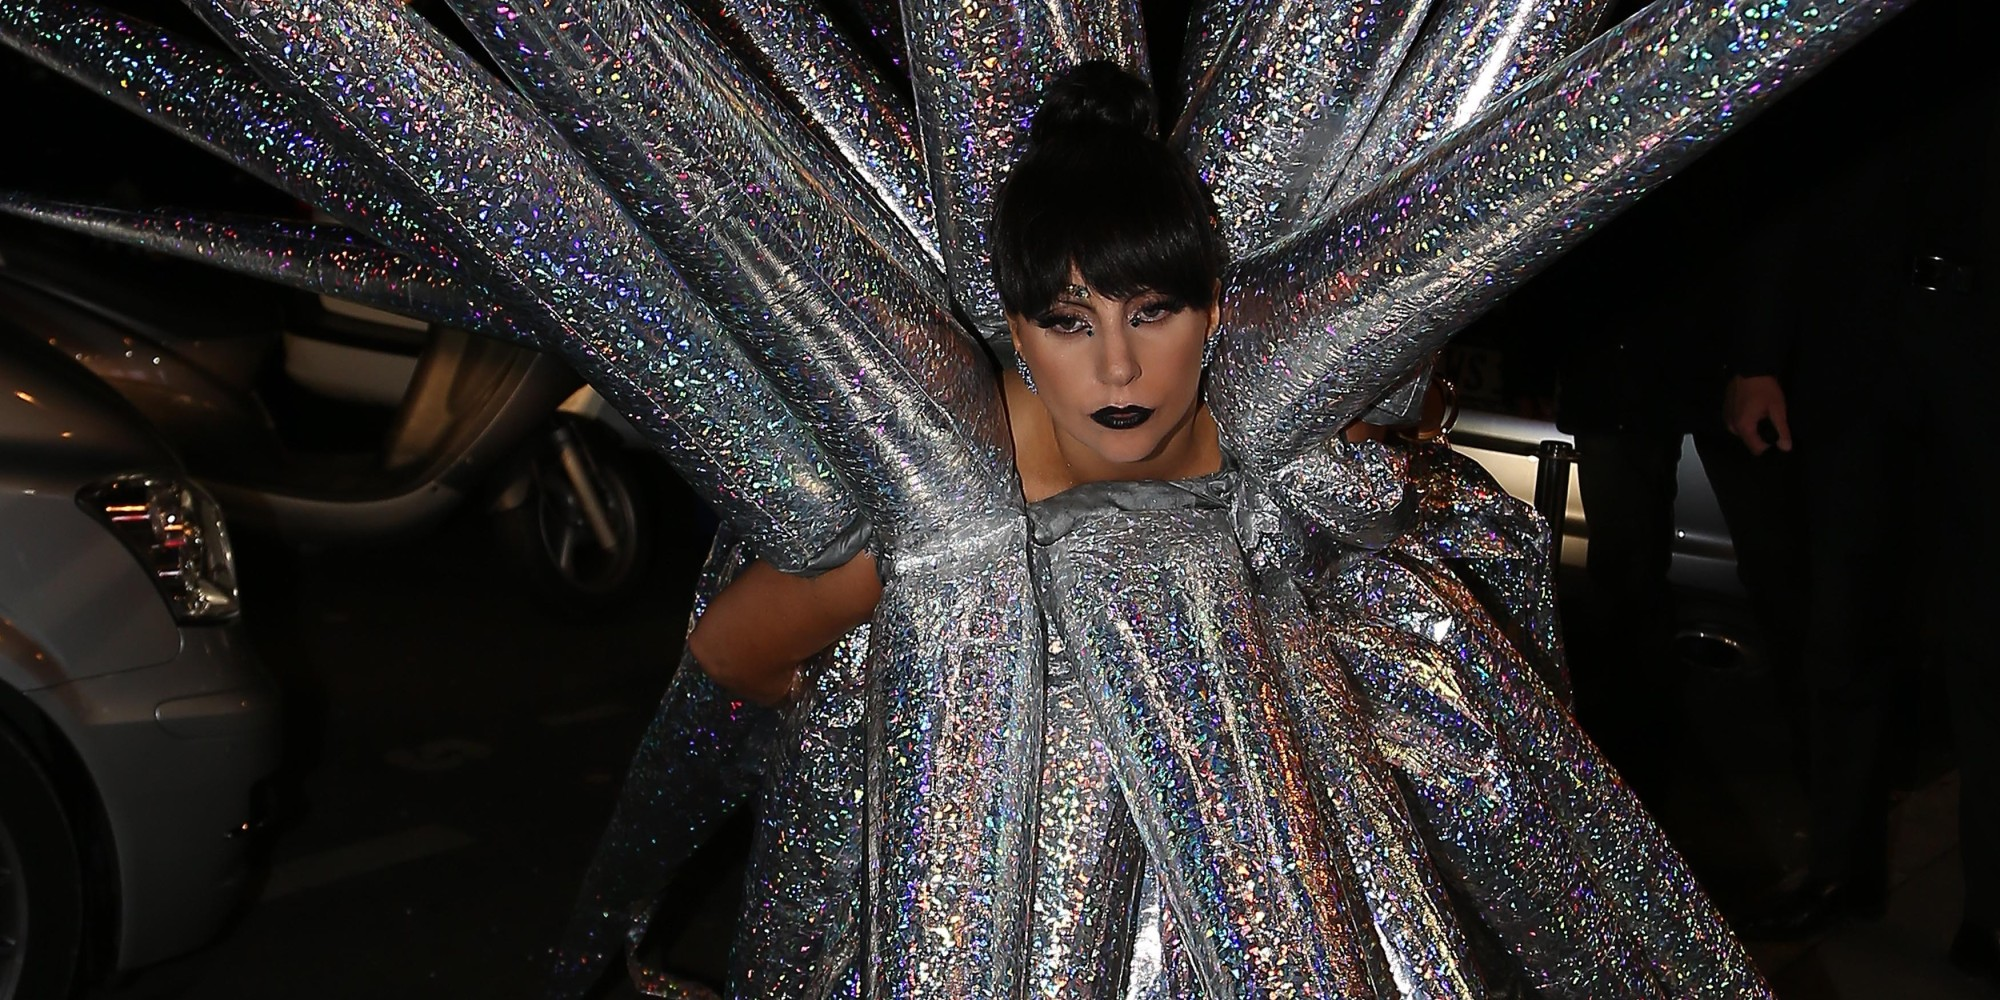 The Craziest Outfits Lady Gaga Has Ever Worn